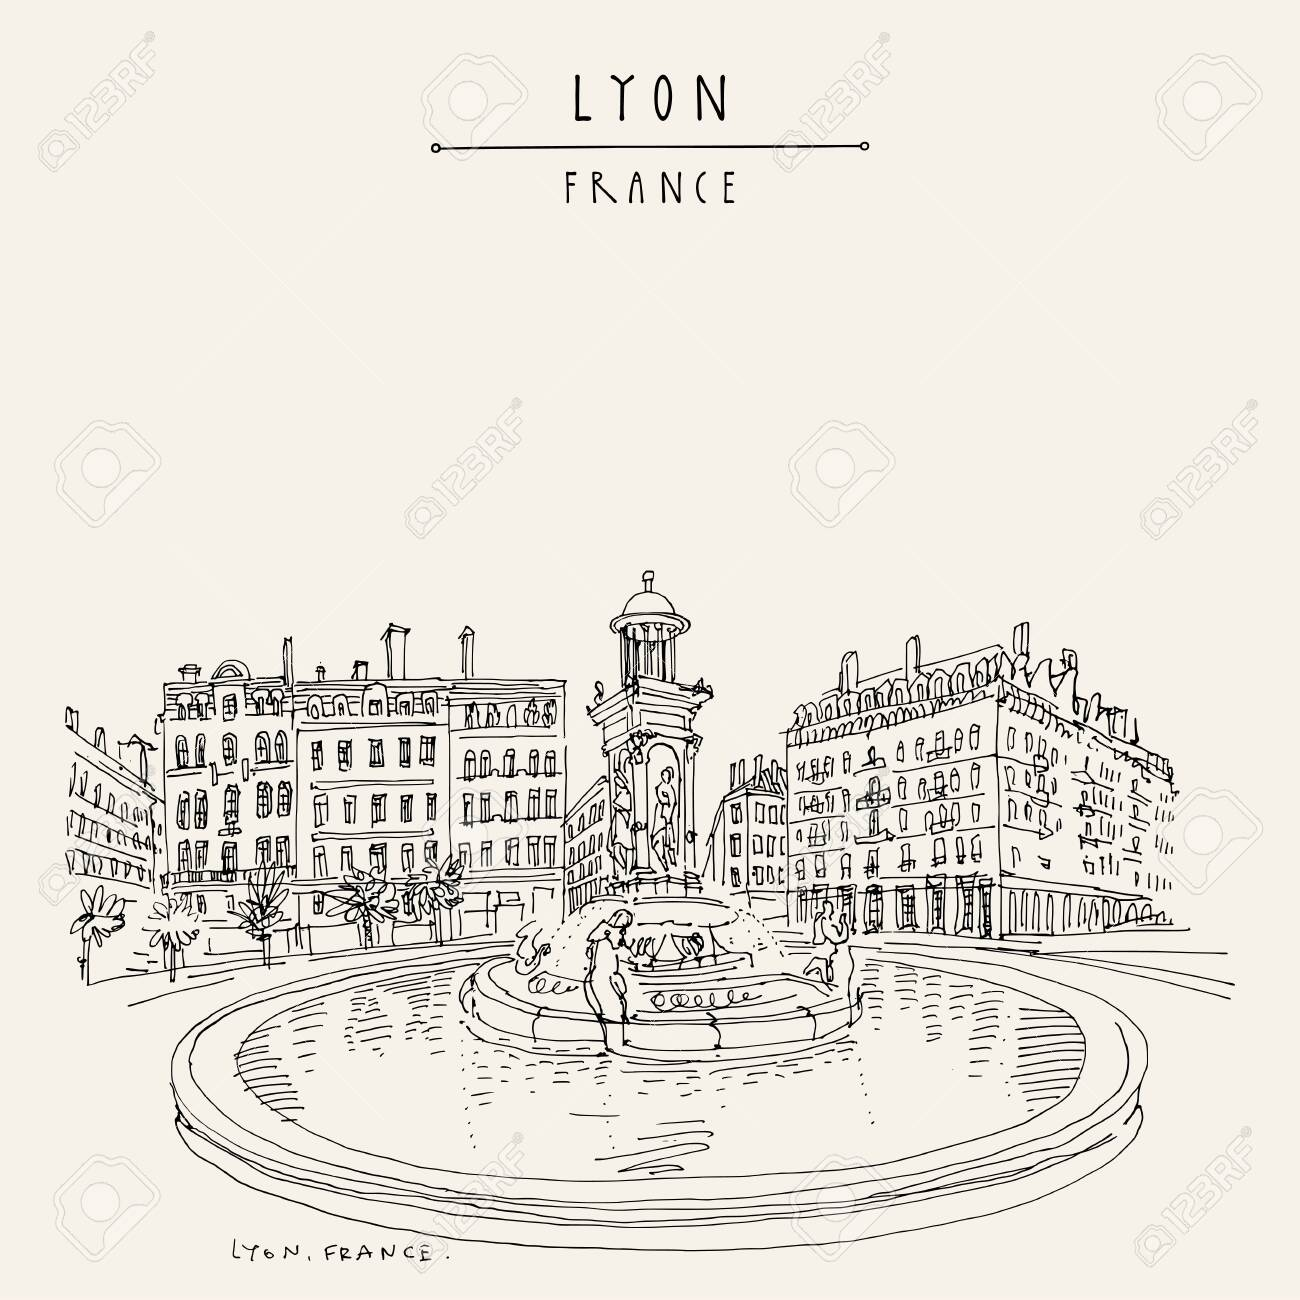 Fountain in Lyon, France, Europe. European city illustration. Hand drawing in retro style. Travel sketch. Vintage hand drawn touristic postcard, poster or book illustration - 136075637